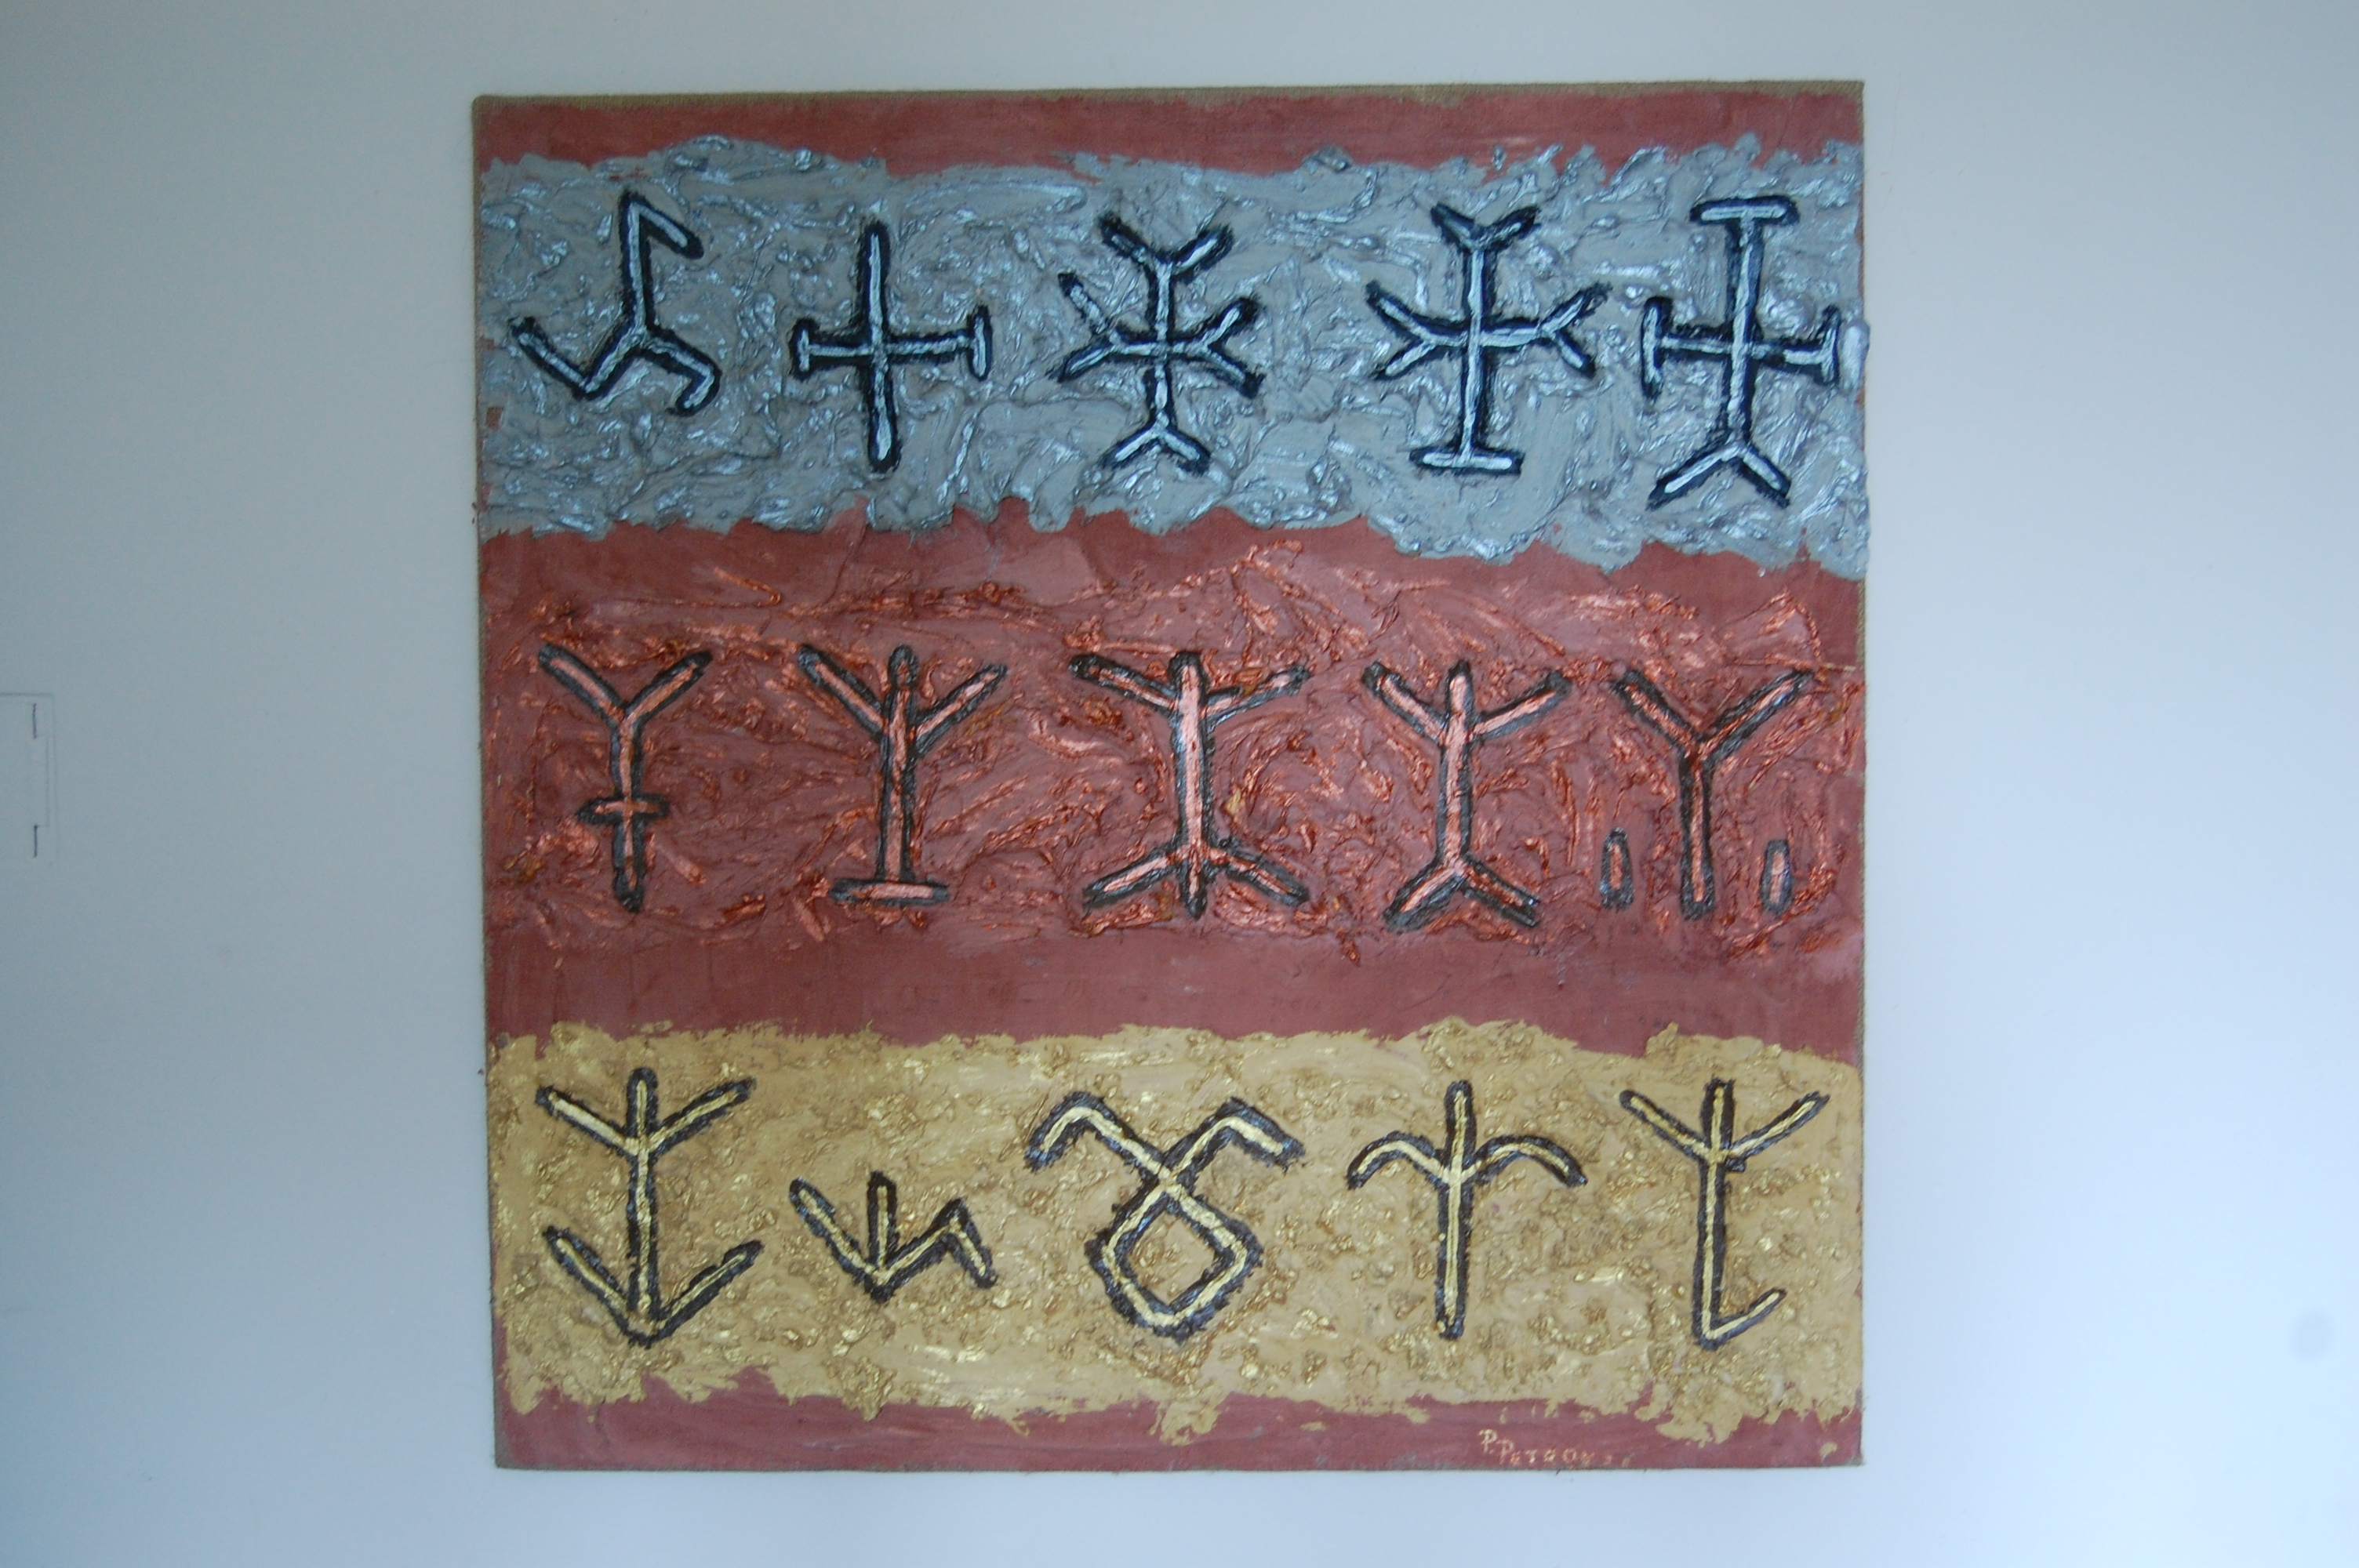 Httpwww Overlordsofchaos Comhtmlorigin Of The Word Jew Html: PROTO BULGARIAN RUNIC SIGNS